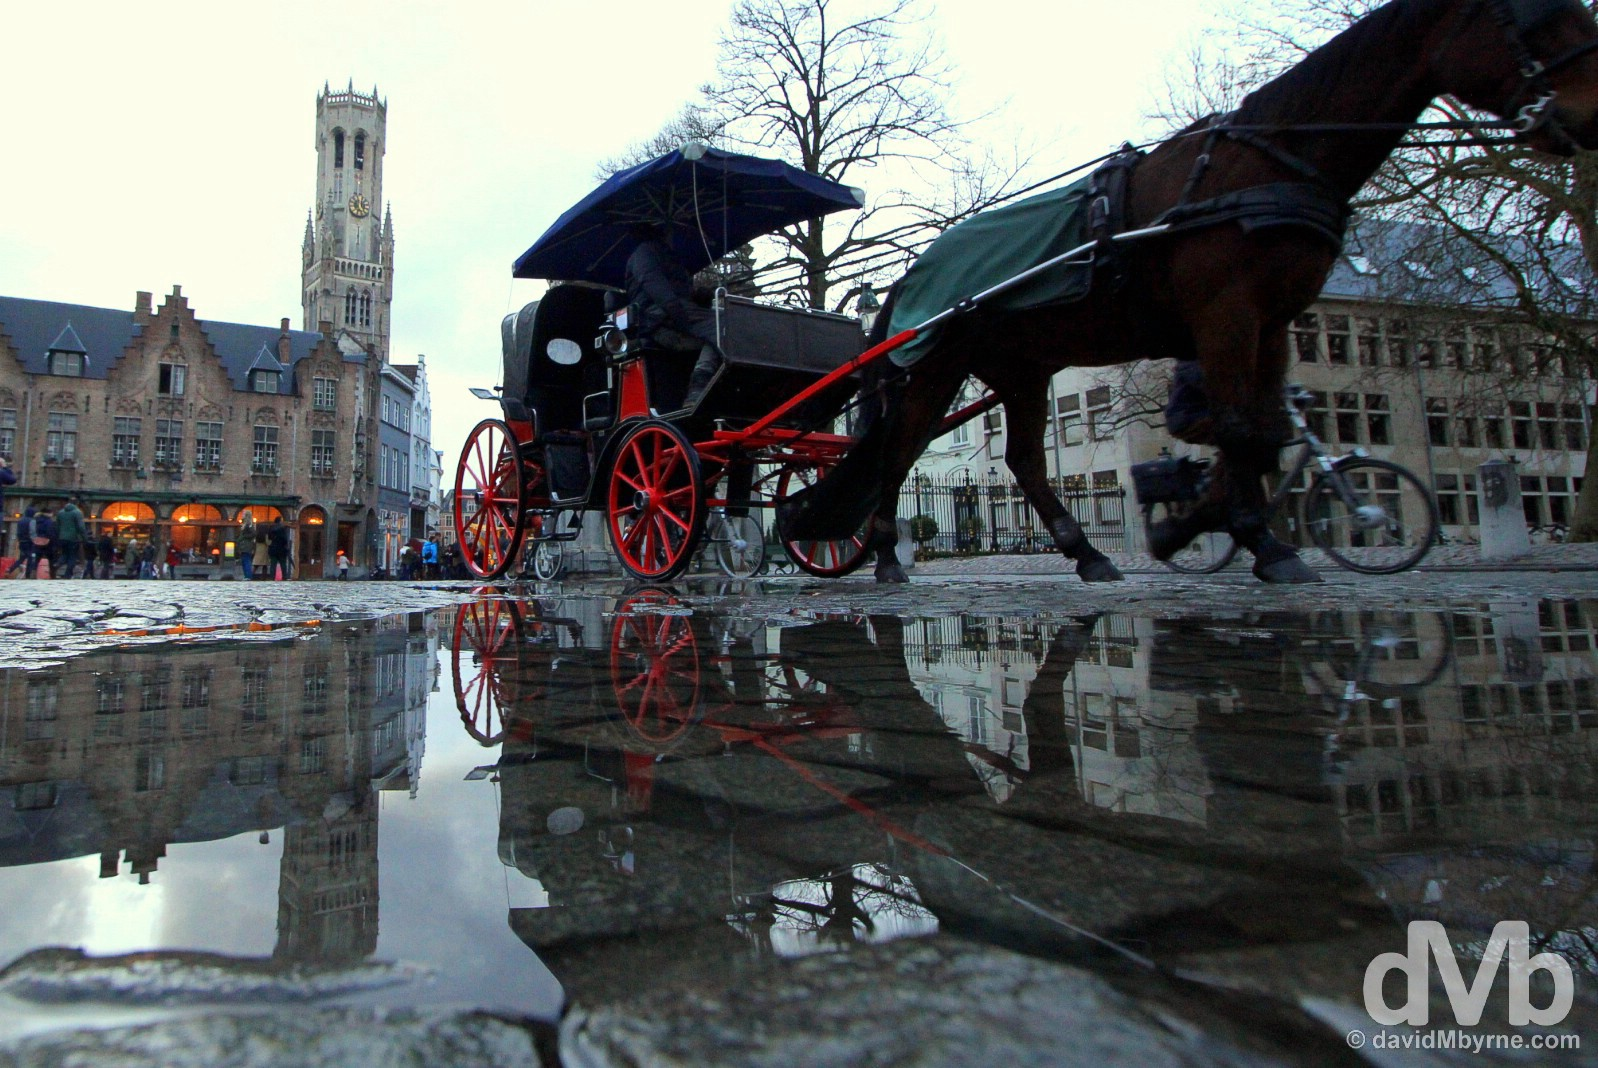 A horse-drawn carriage in Burg, Bruges, western Flanders. Belgium. January 16, 2016.